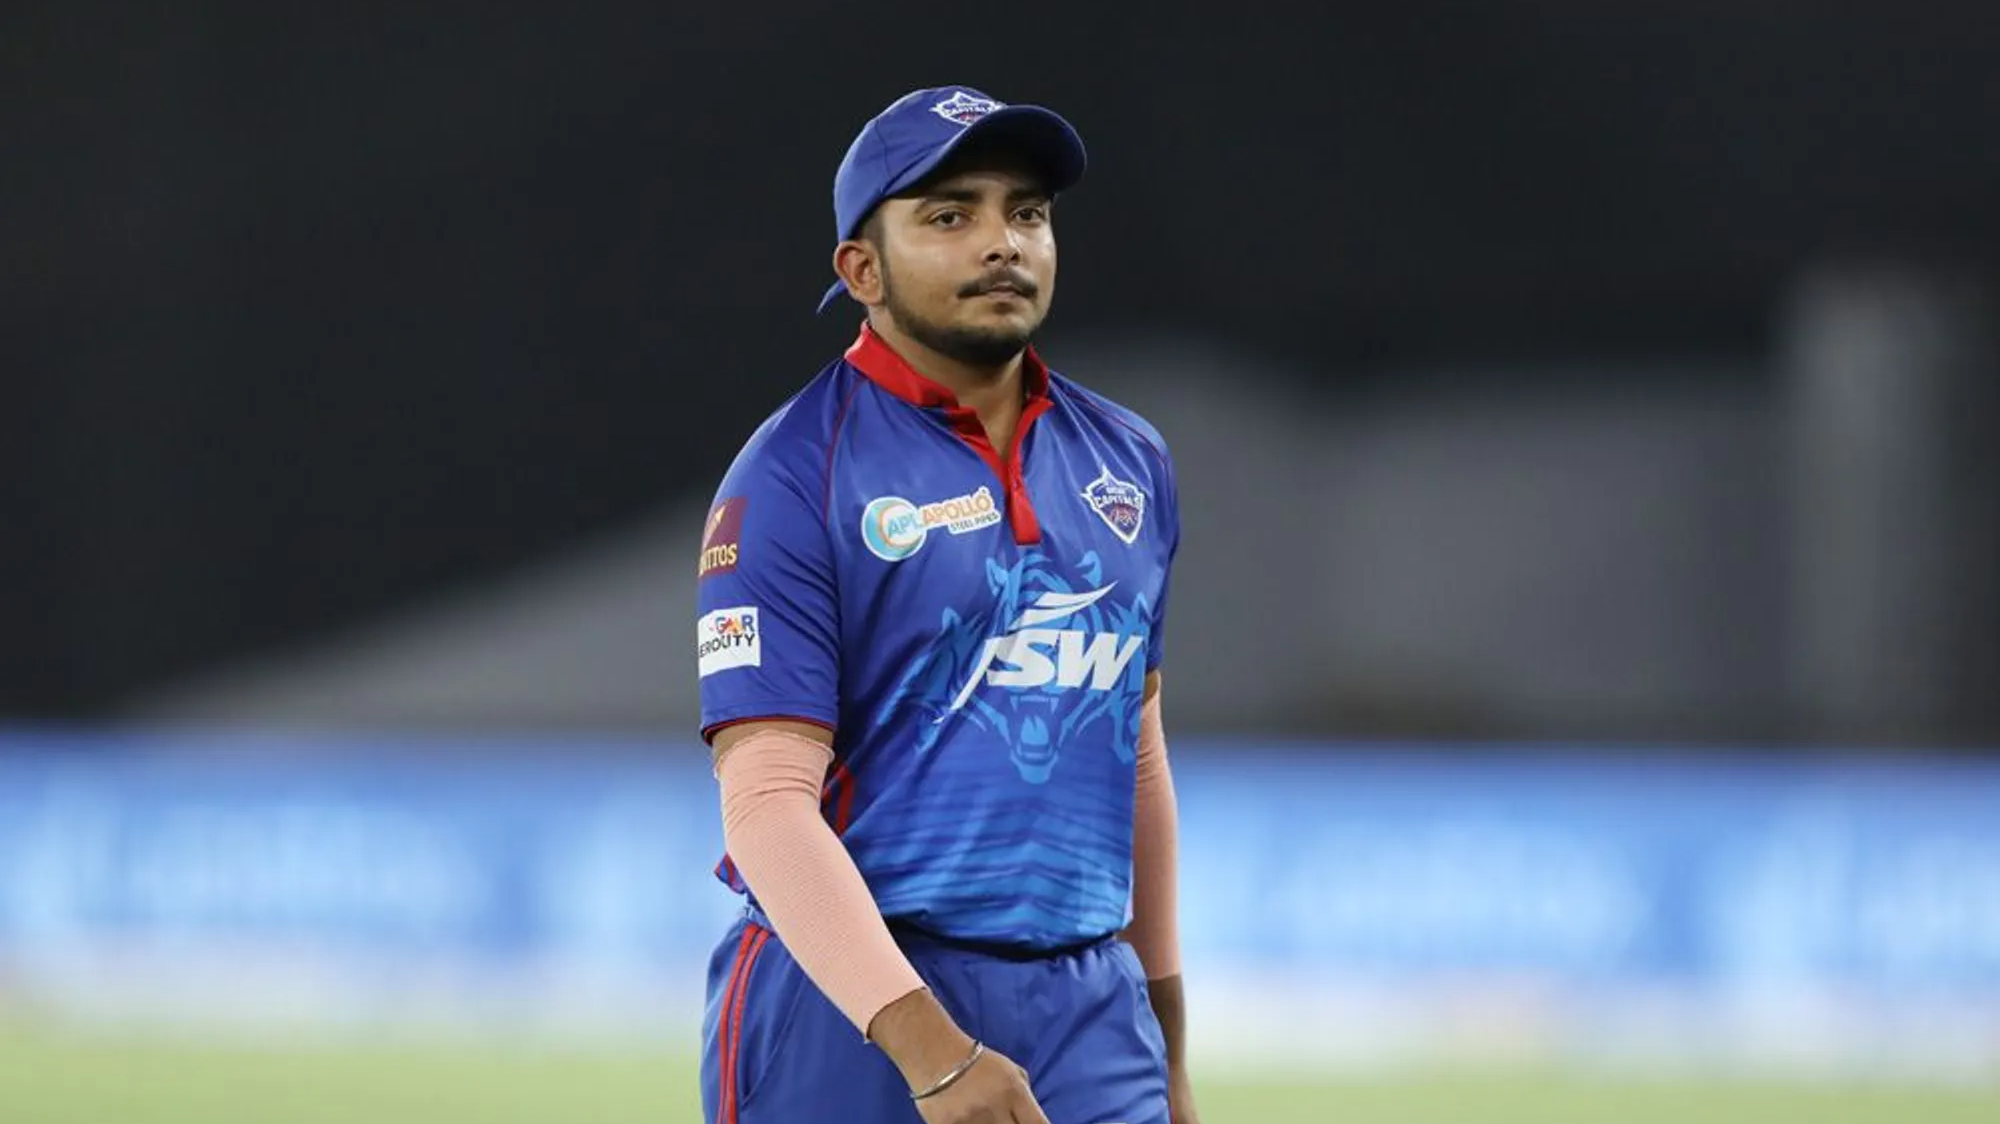 Prithvi Shaw reveals why he stopped batting in nets during IPL 2020